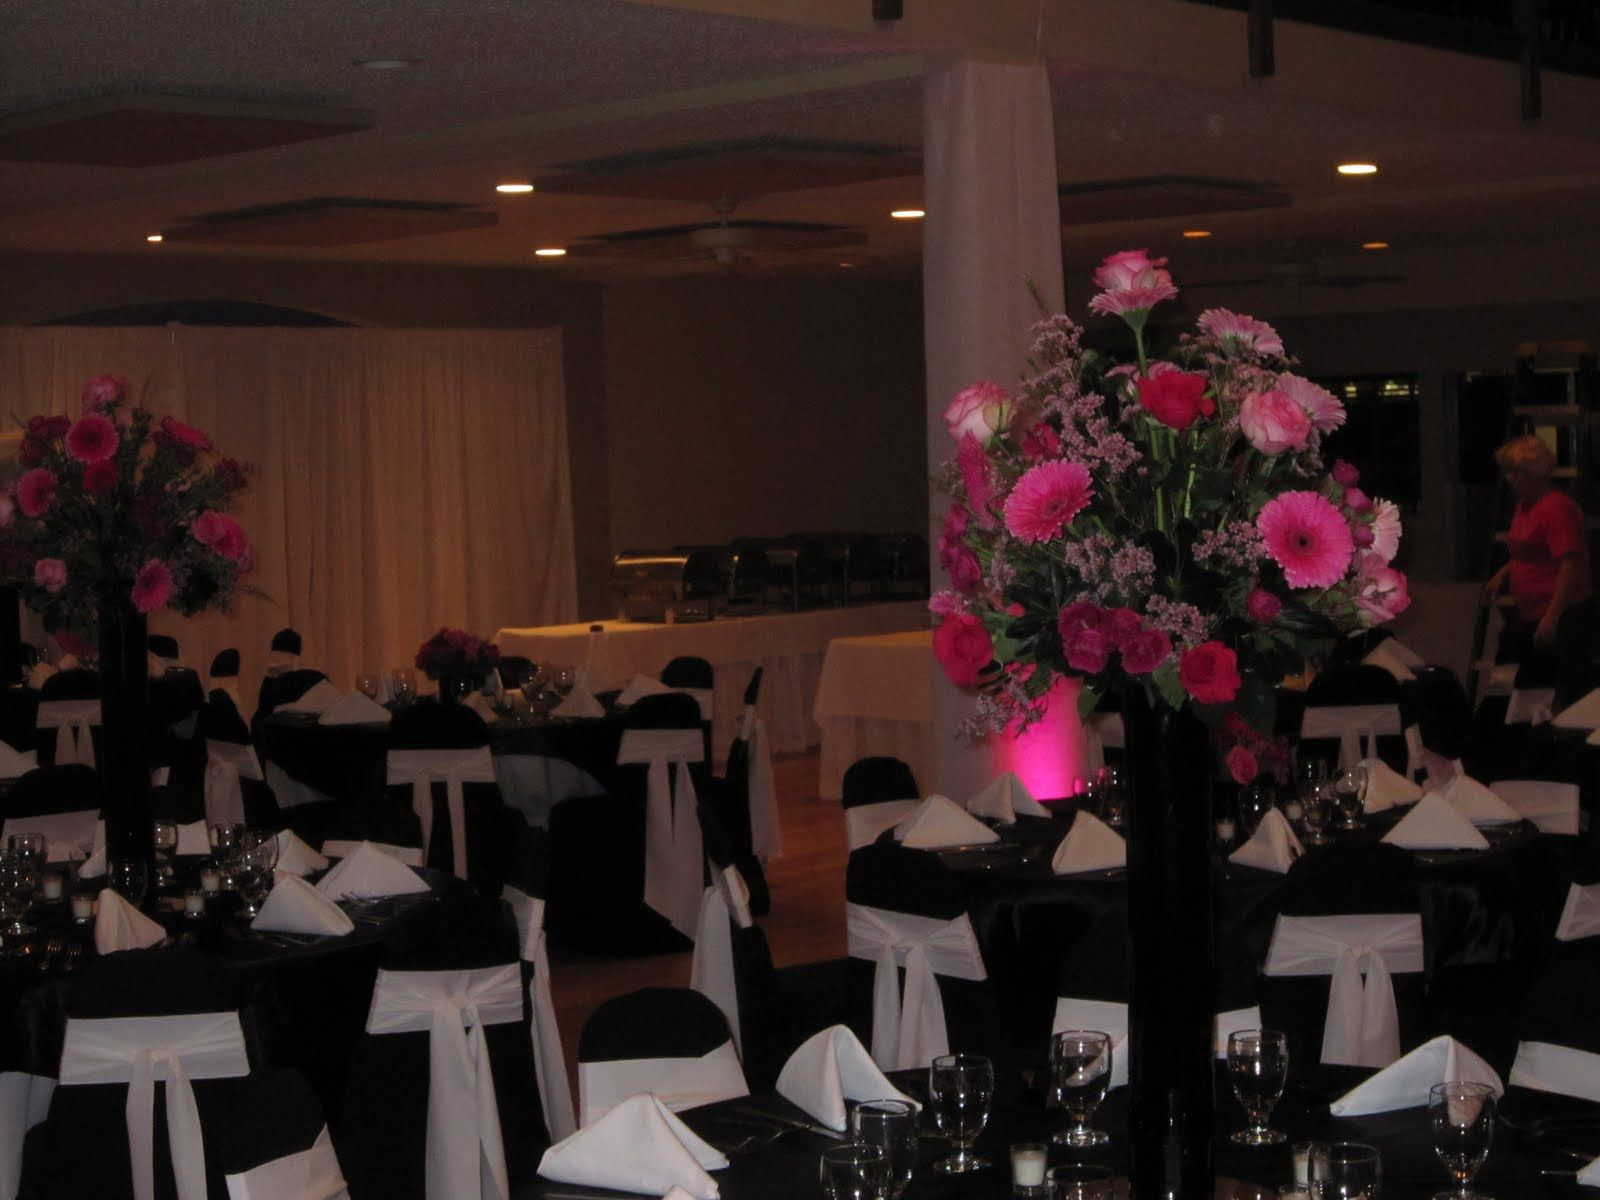 Wedding decorations red  black white and pink wedding  Google Search  Wedding digs